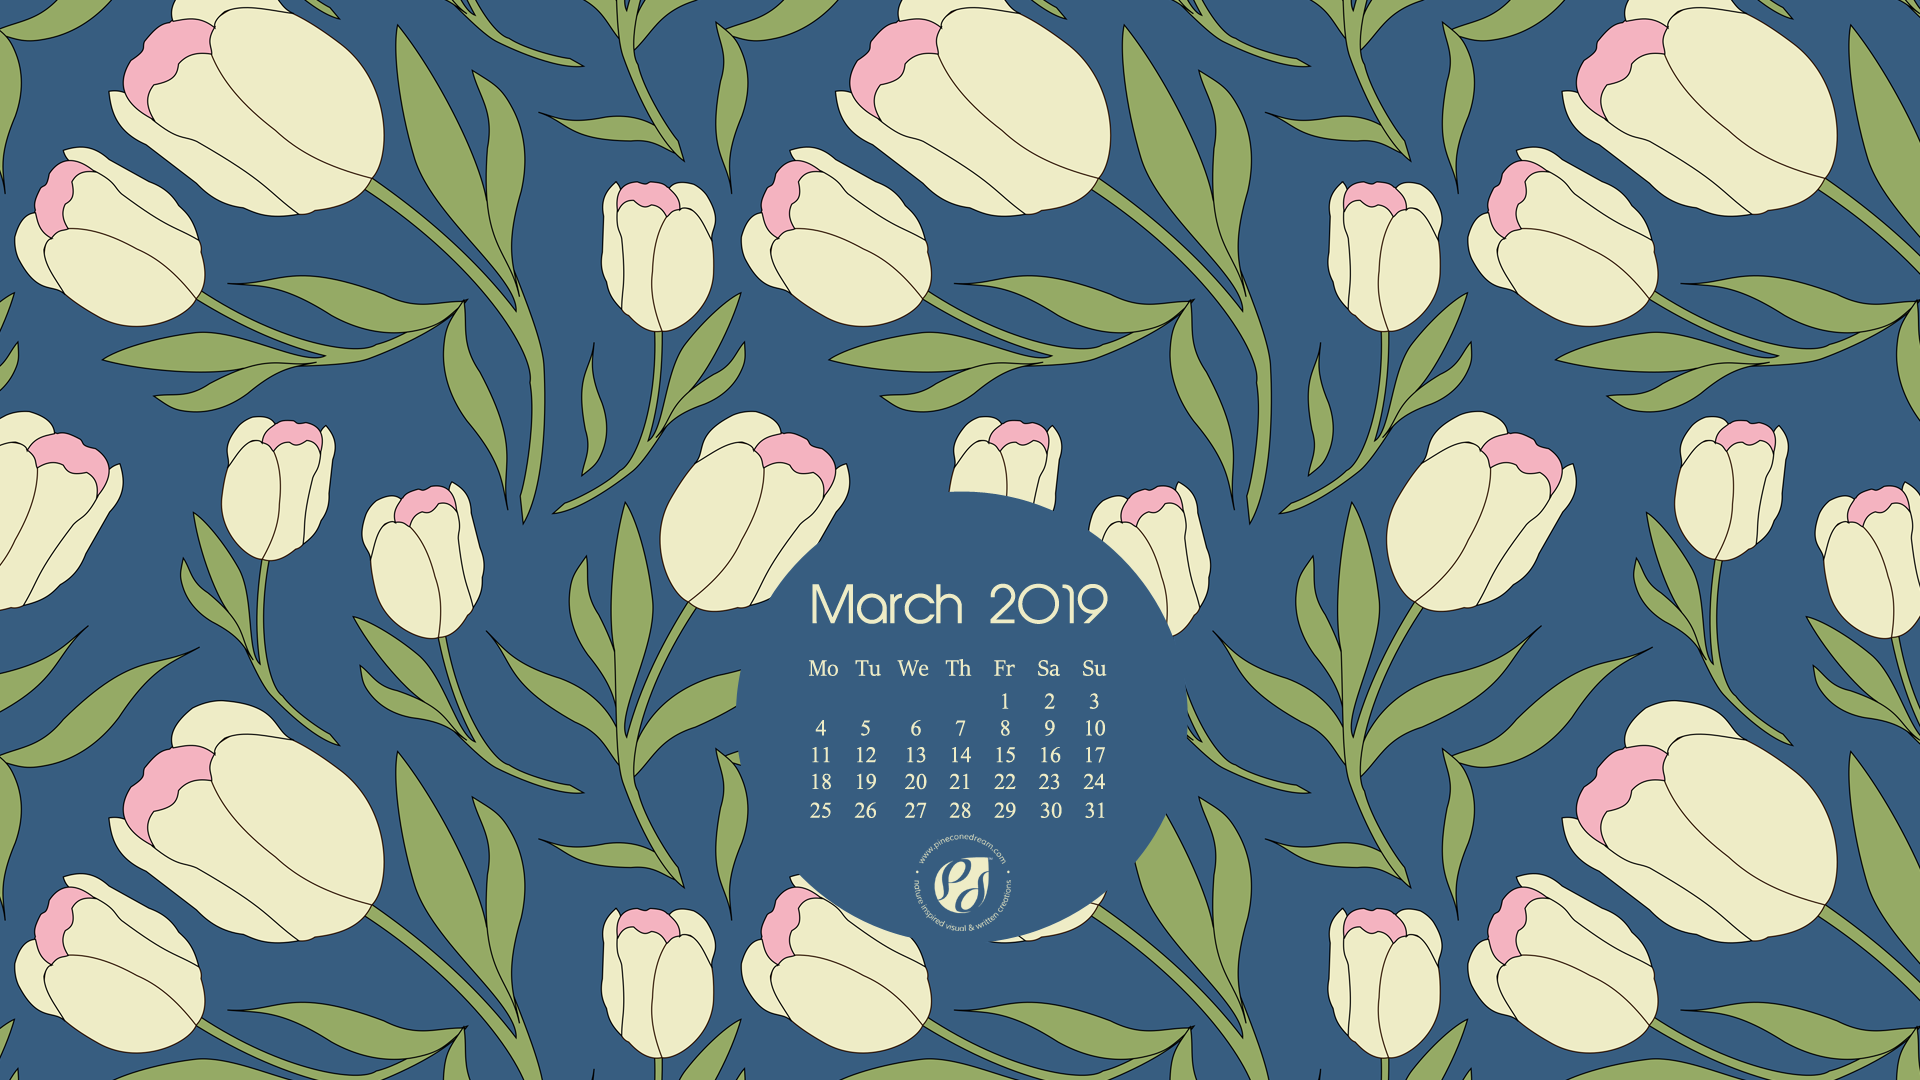 March 2019 calendar wallpapers printable planner 1920x1080